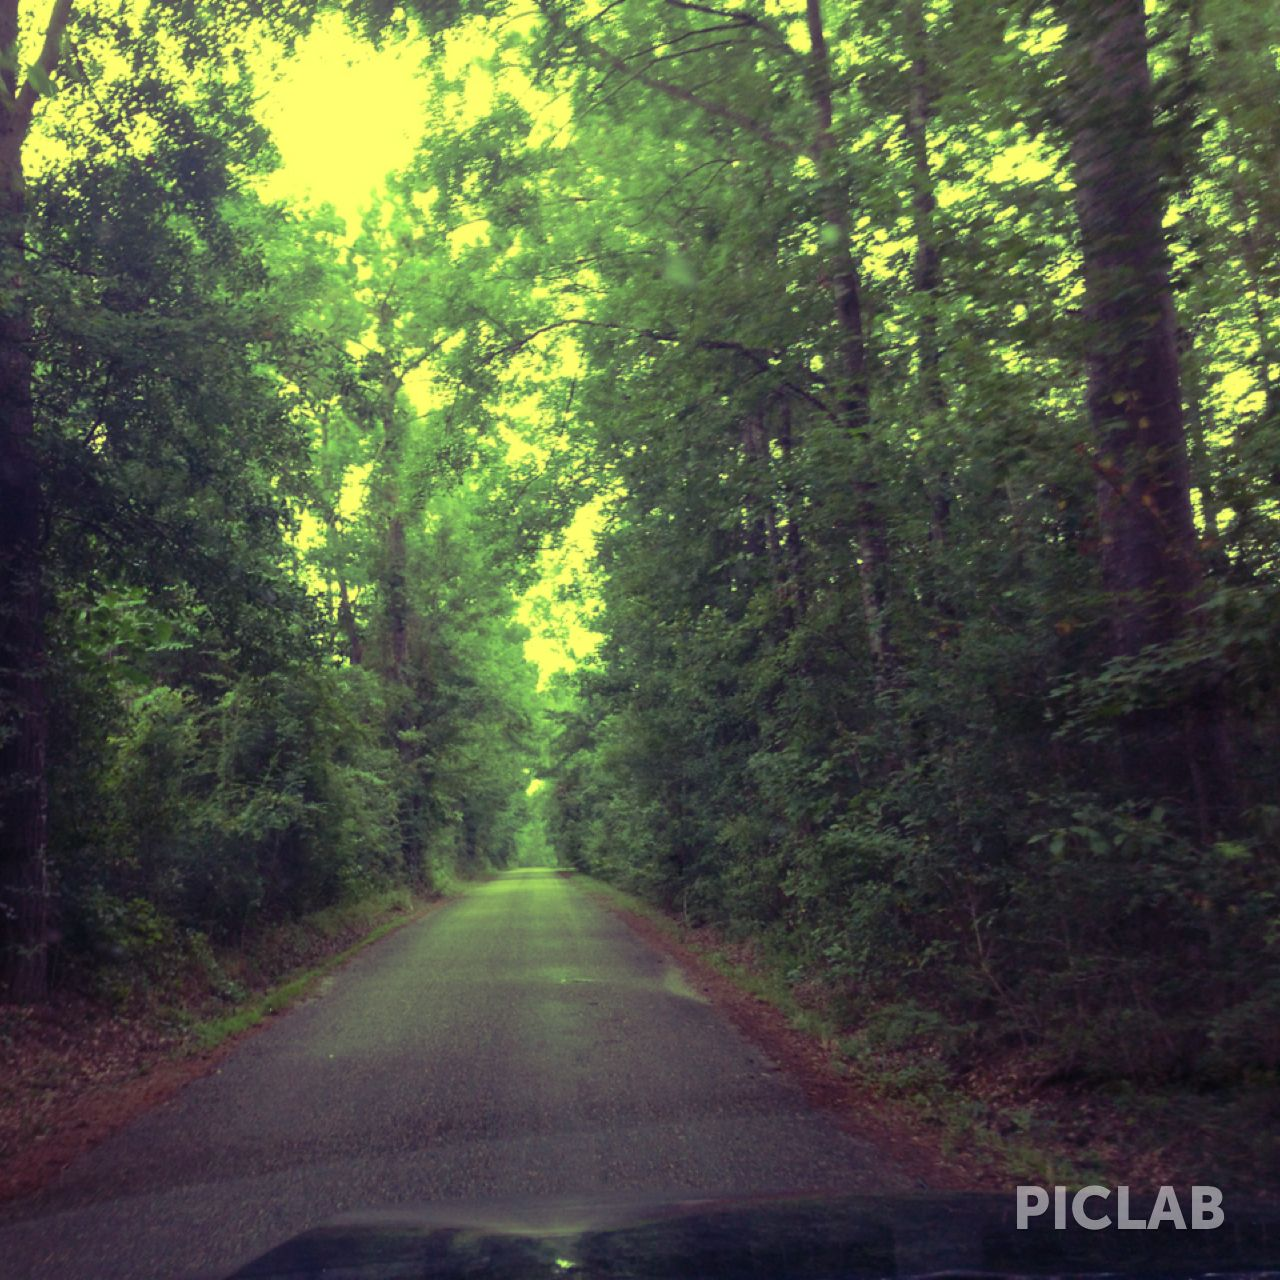 Road In Picayune Mississippi